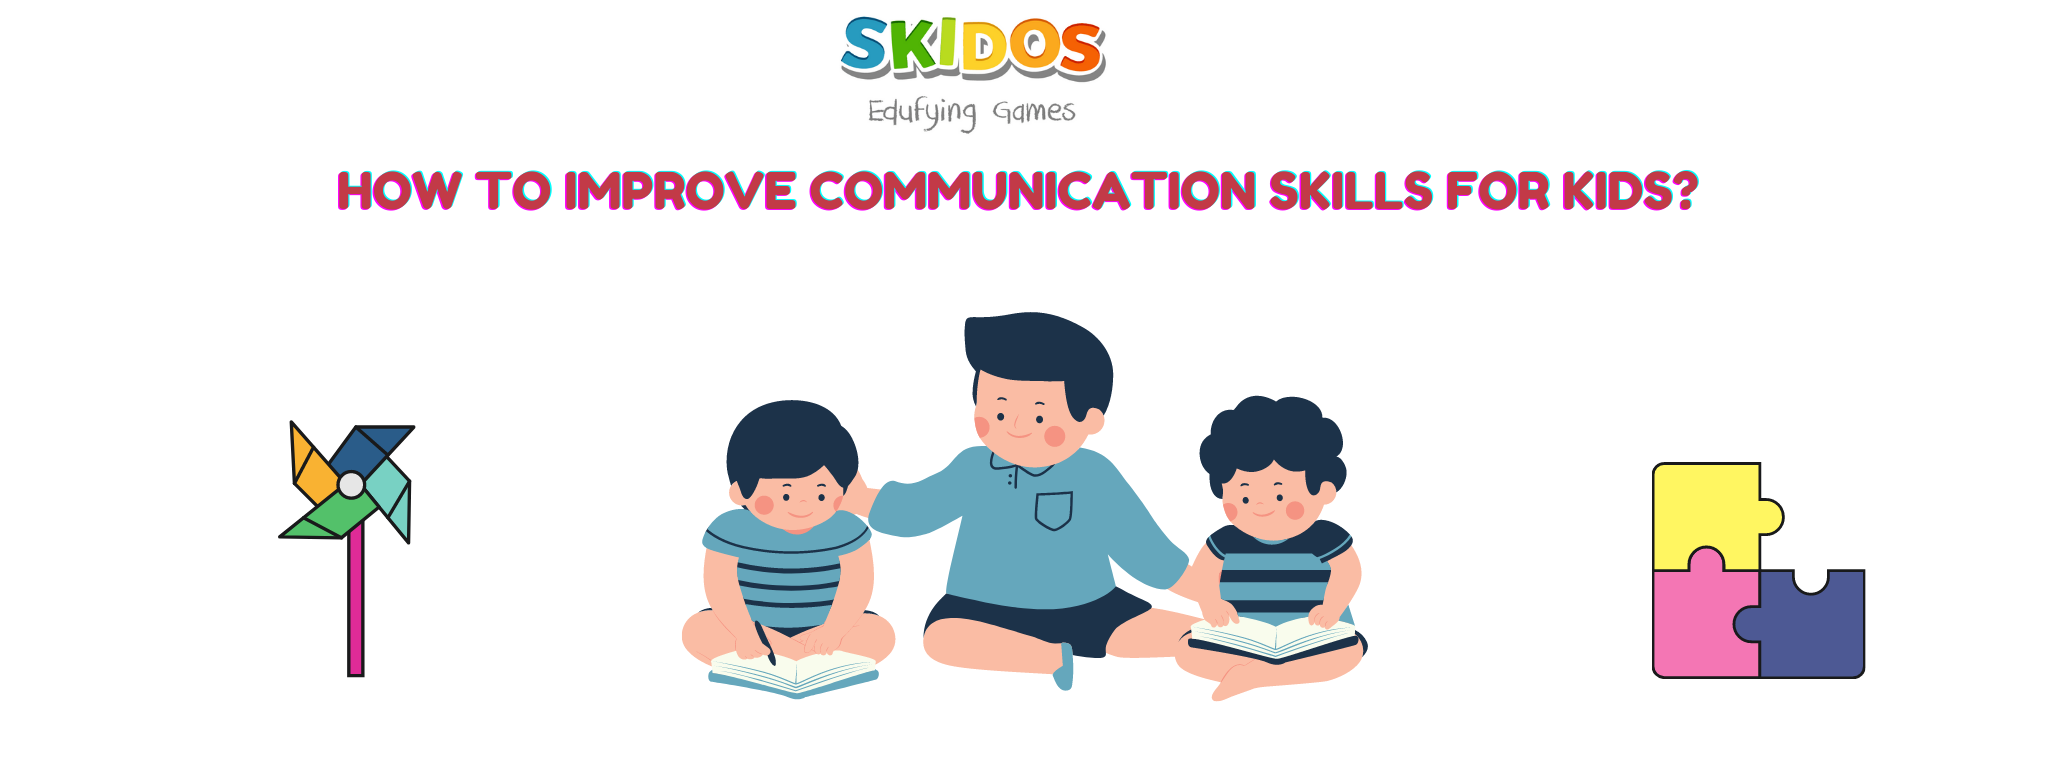 How to increase communication skills for kids